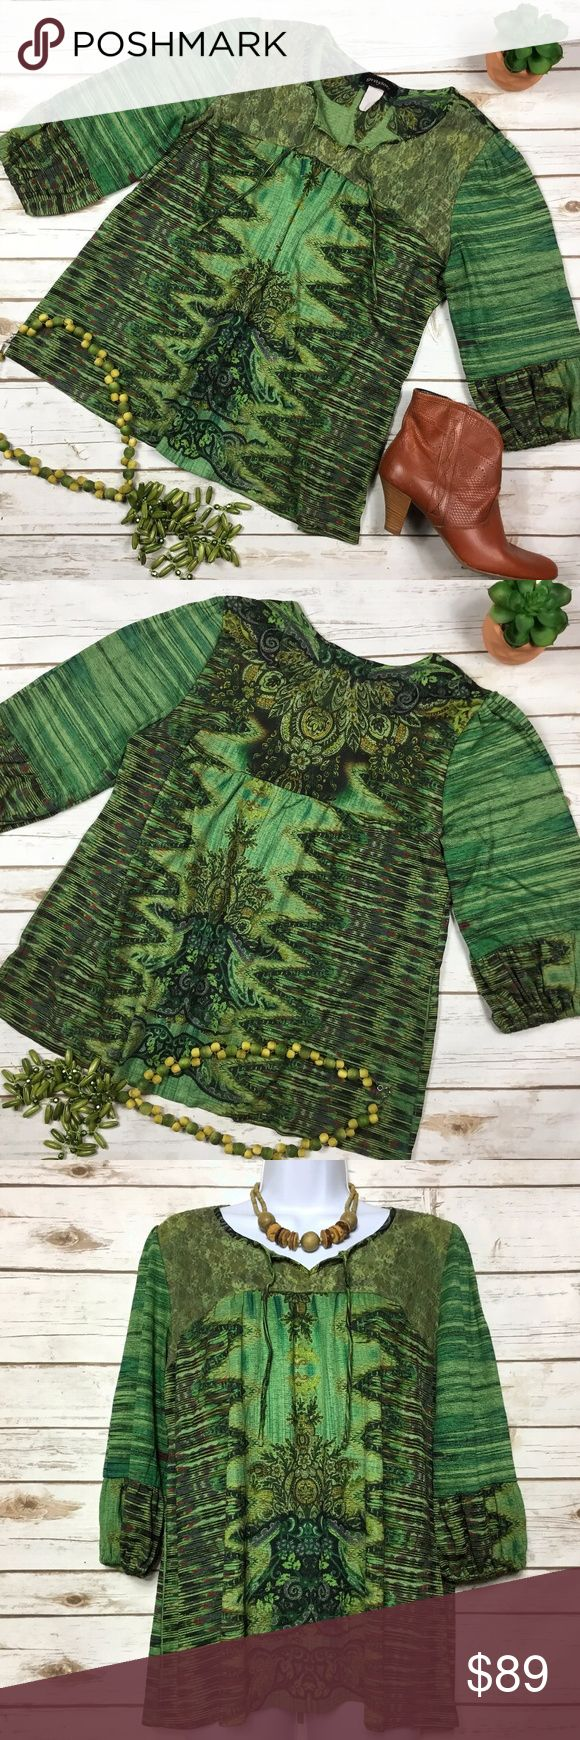 Vintage Grayson Peasant BOHO Festival Blouse Top Vintage Grayson festival peasant style boho blouse. Wonderfully patterned blouse in shades of green, orange, and copper with shimmery golden threads. Has green lace overlay and ties in front. ¾-sleeves with elastic cuffs. Judging by the materials tag, this piece is vintage. Difficult to read, but I believe it's 99% polyester and 1% spandex with nylon/polyester trim. Size L, measures about 20 inches from armpit to armpit and 24 inches in…